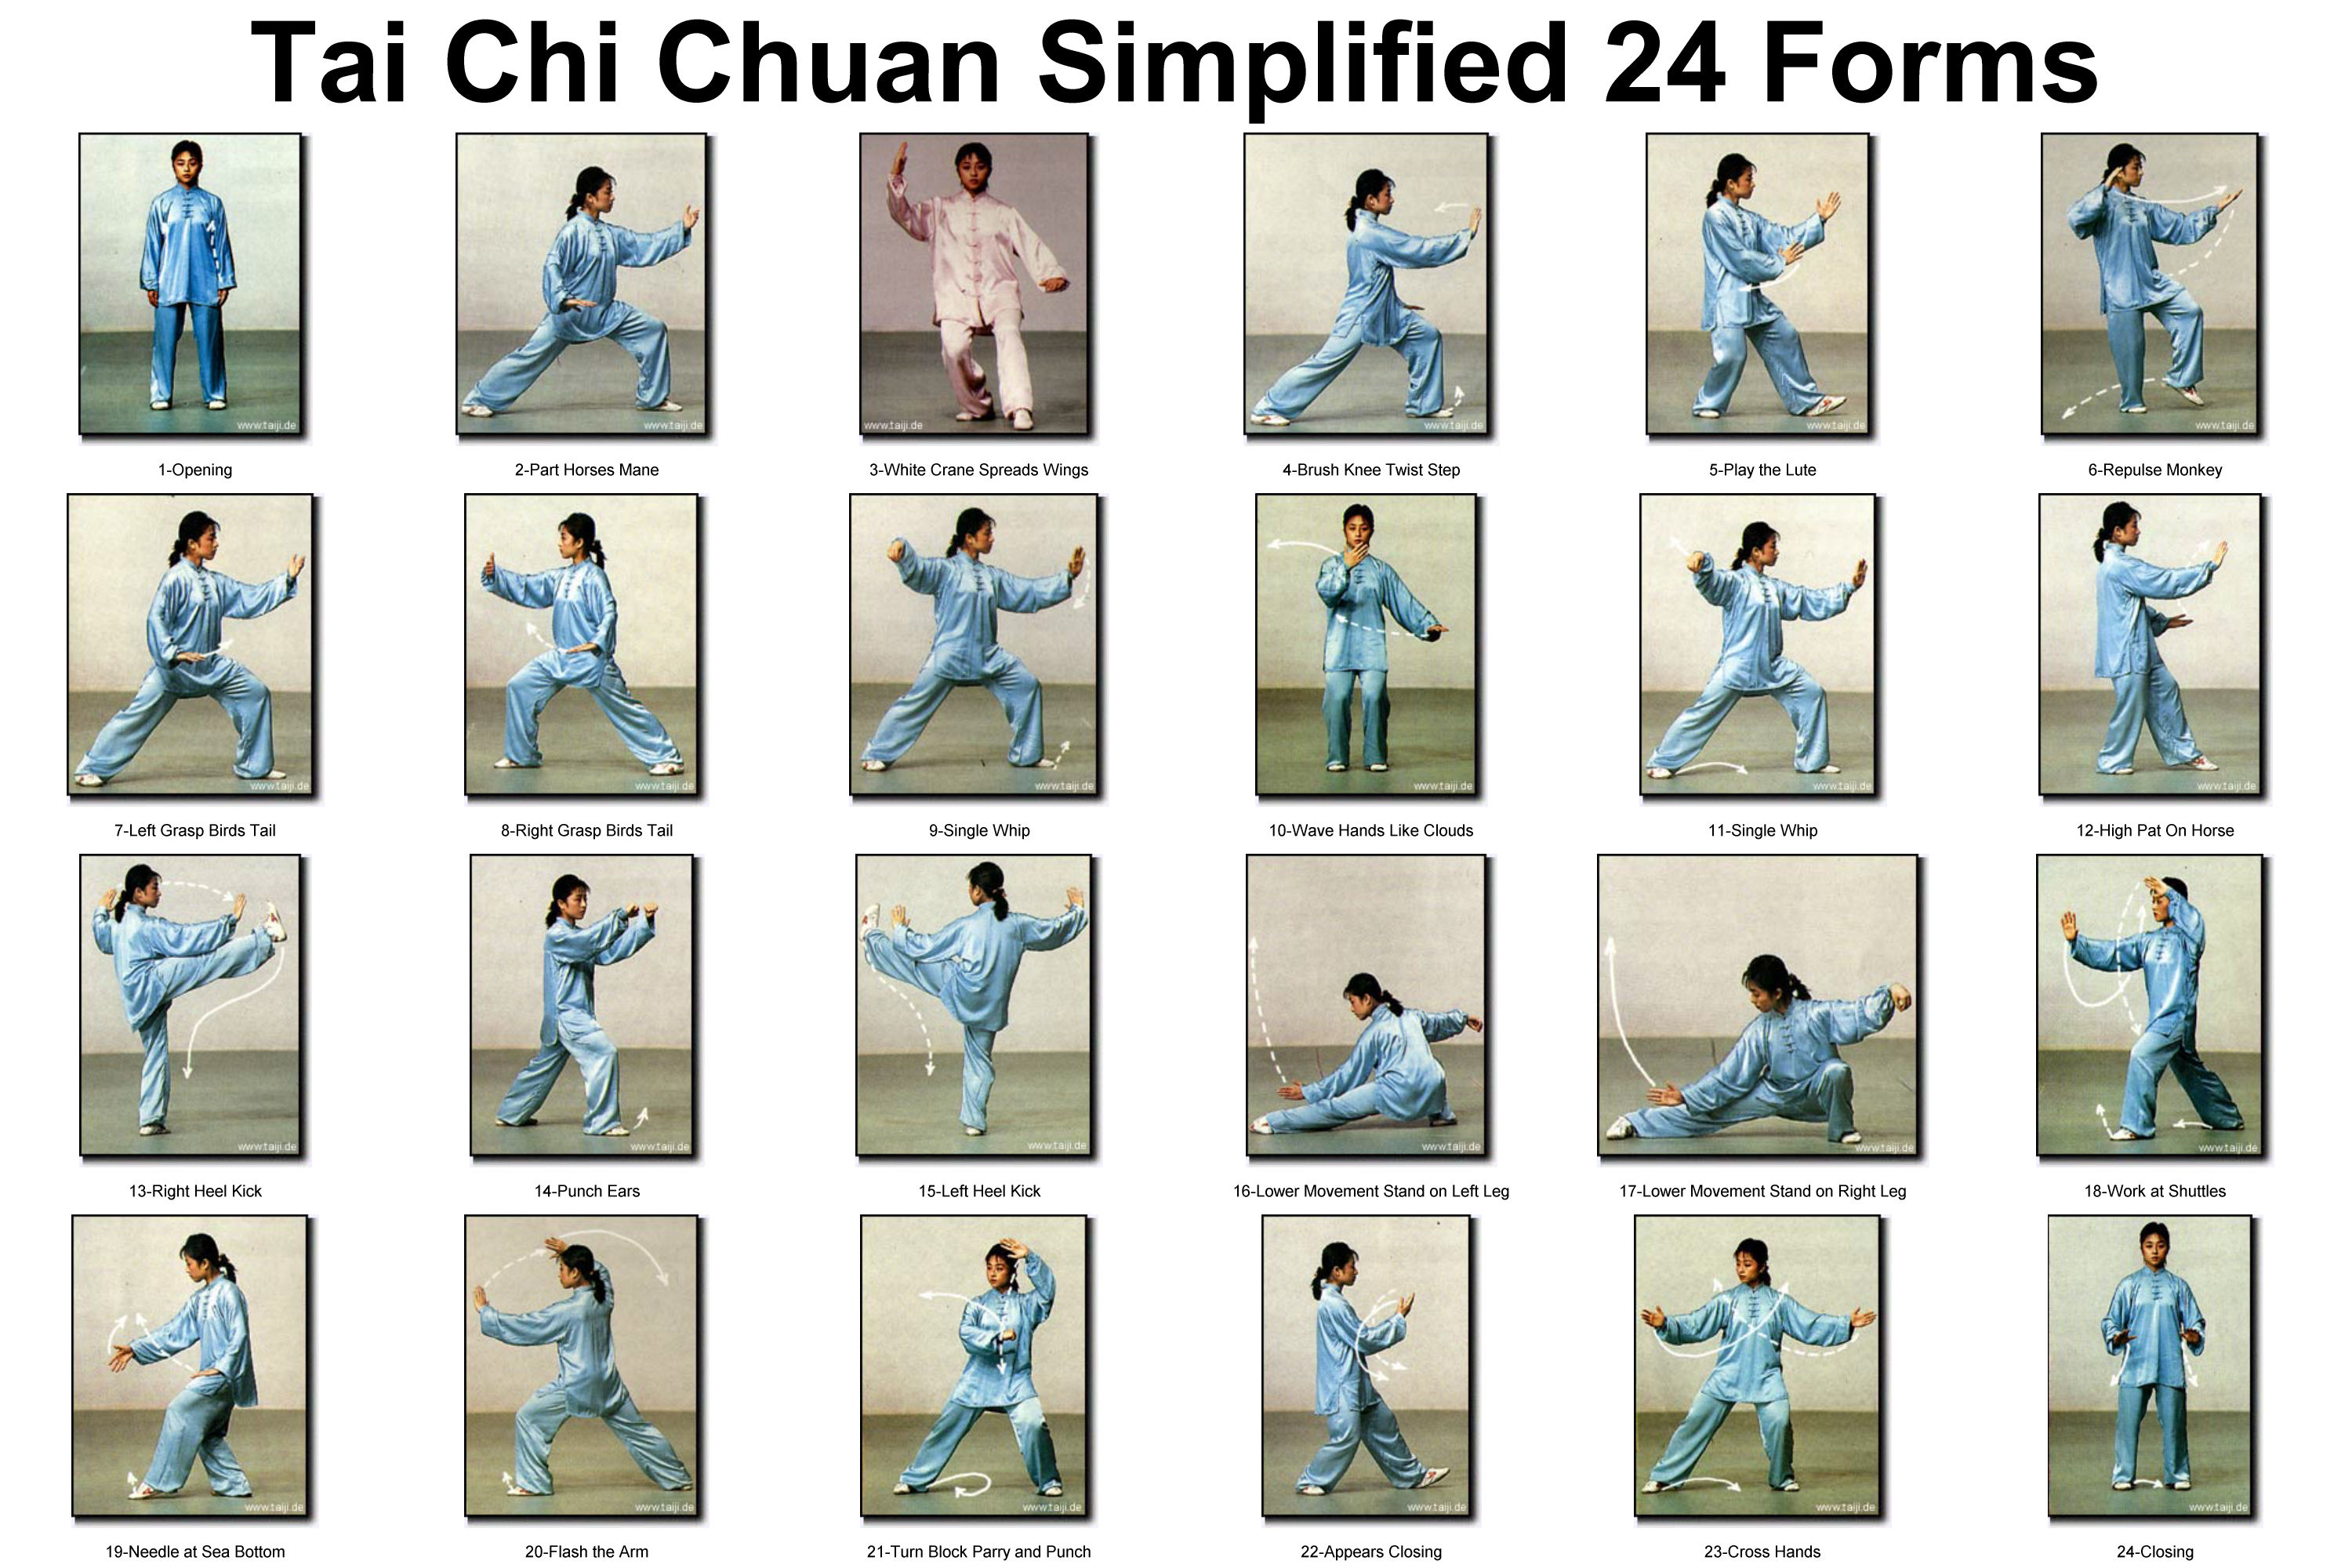 understanding the benefits of tai chi physical education essay This course will focus on the development of (1) motor tai chi skills for physical fitness and positive exercise experience, (2) knowledge of tai chi and basic components of health-related physical fitness, and (3) understanding of benefits of tai chi toward a positive attitude toward wellness and physical activity which will facilitate an.